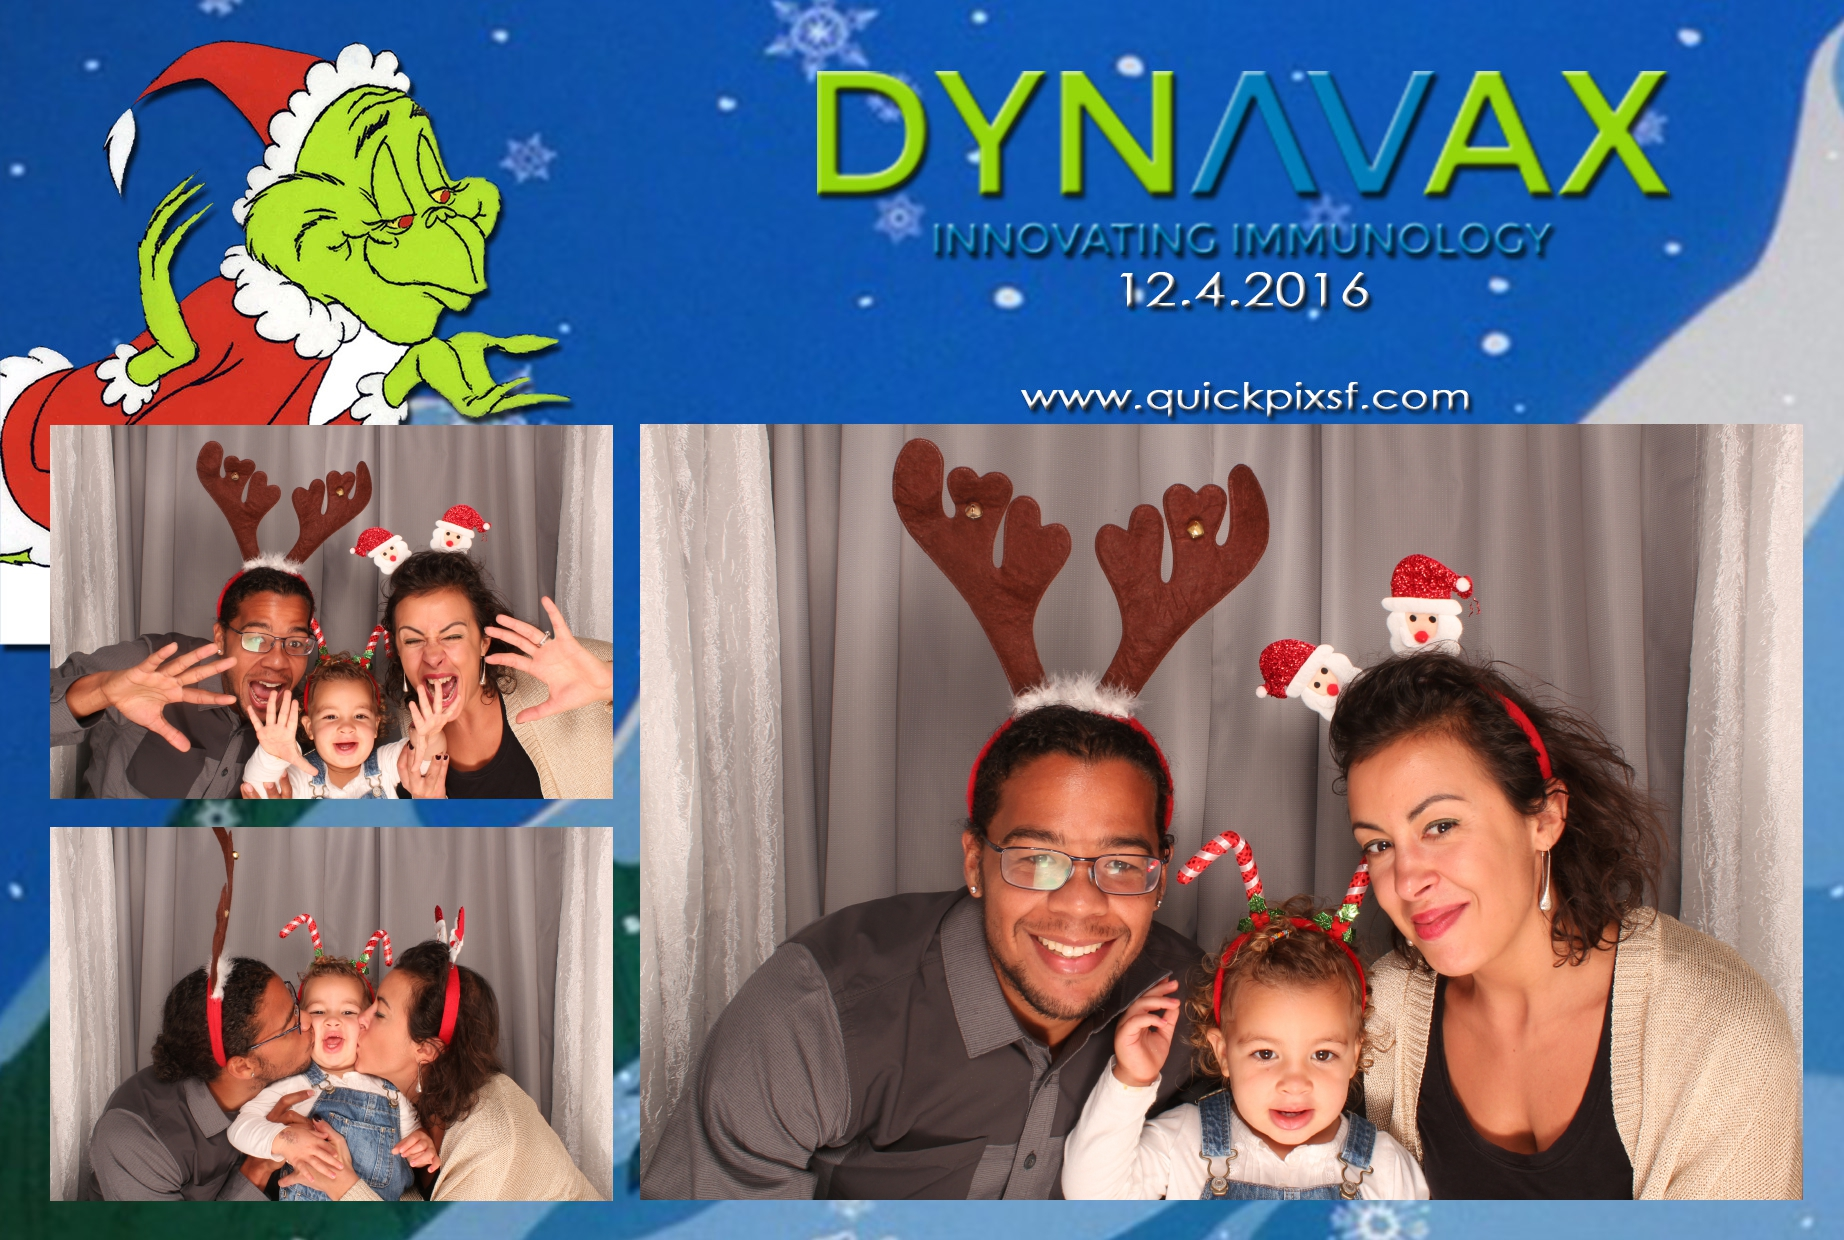 Dynavax brought us back for a second year to help them celebrate the holidays with their family! The folks at Dynavax are so sweet and it was our pleasure coming back and seeing familiar faces. Happy Holidays to the great people at Dynavax!